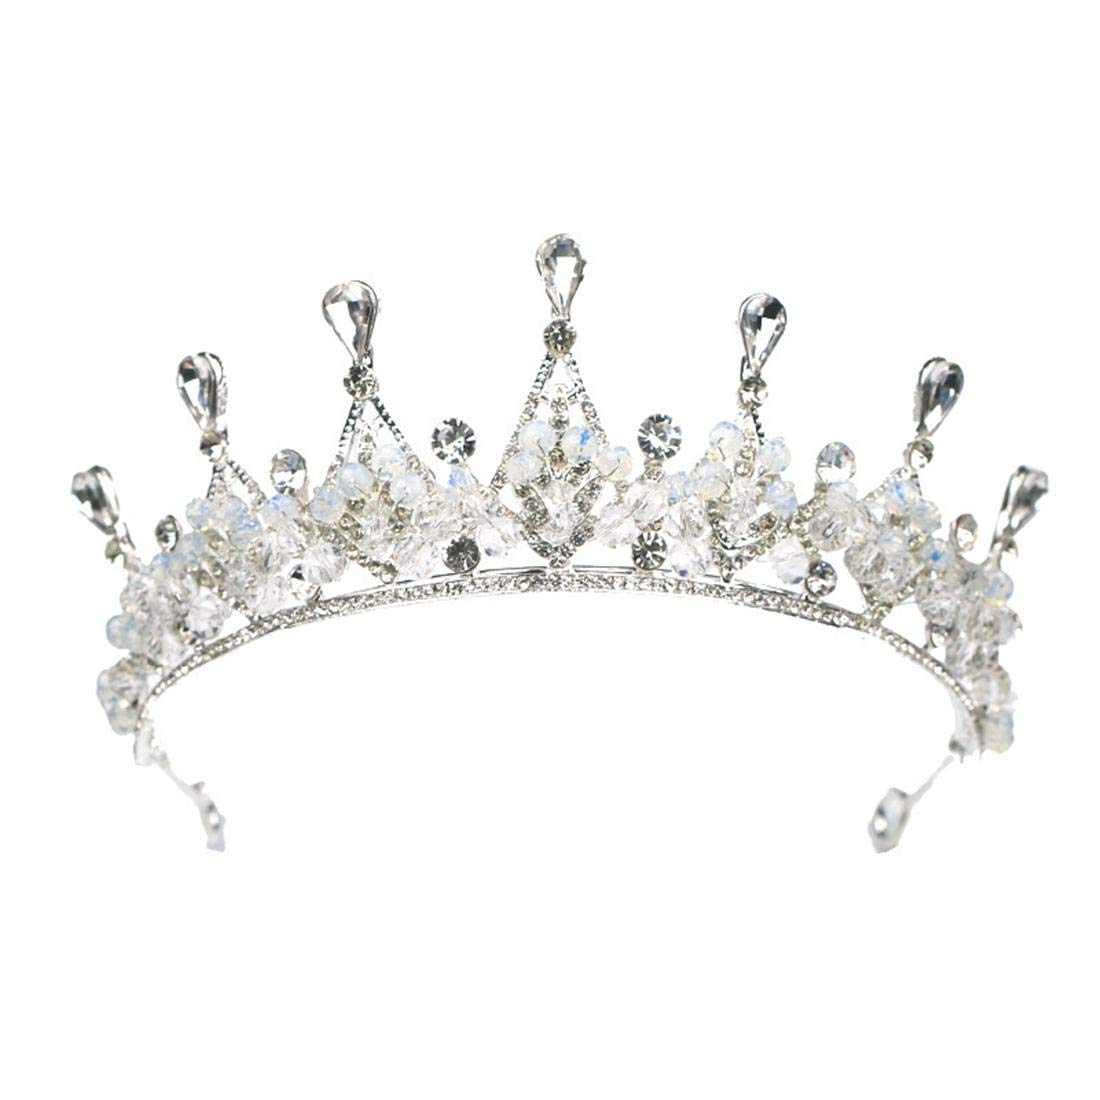 ZYDP Rhinestone Wedding Crowns and Tiaras for Women, Costume Party Hair Accessories (Color : Silver) by ZYDP